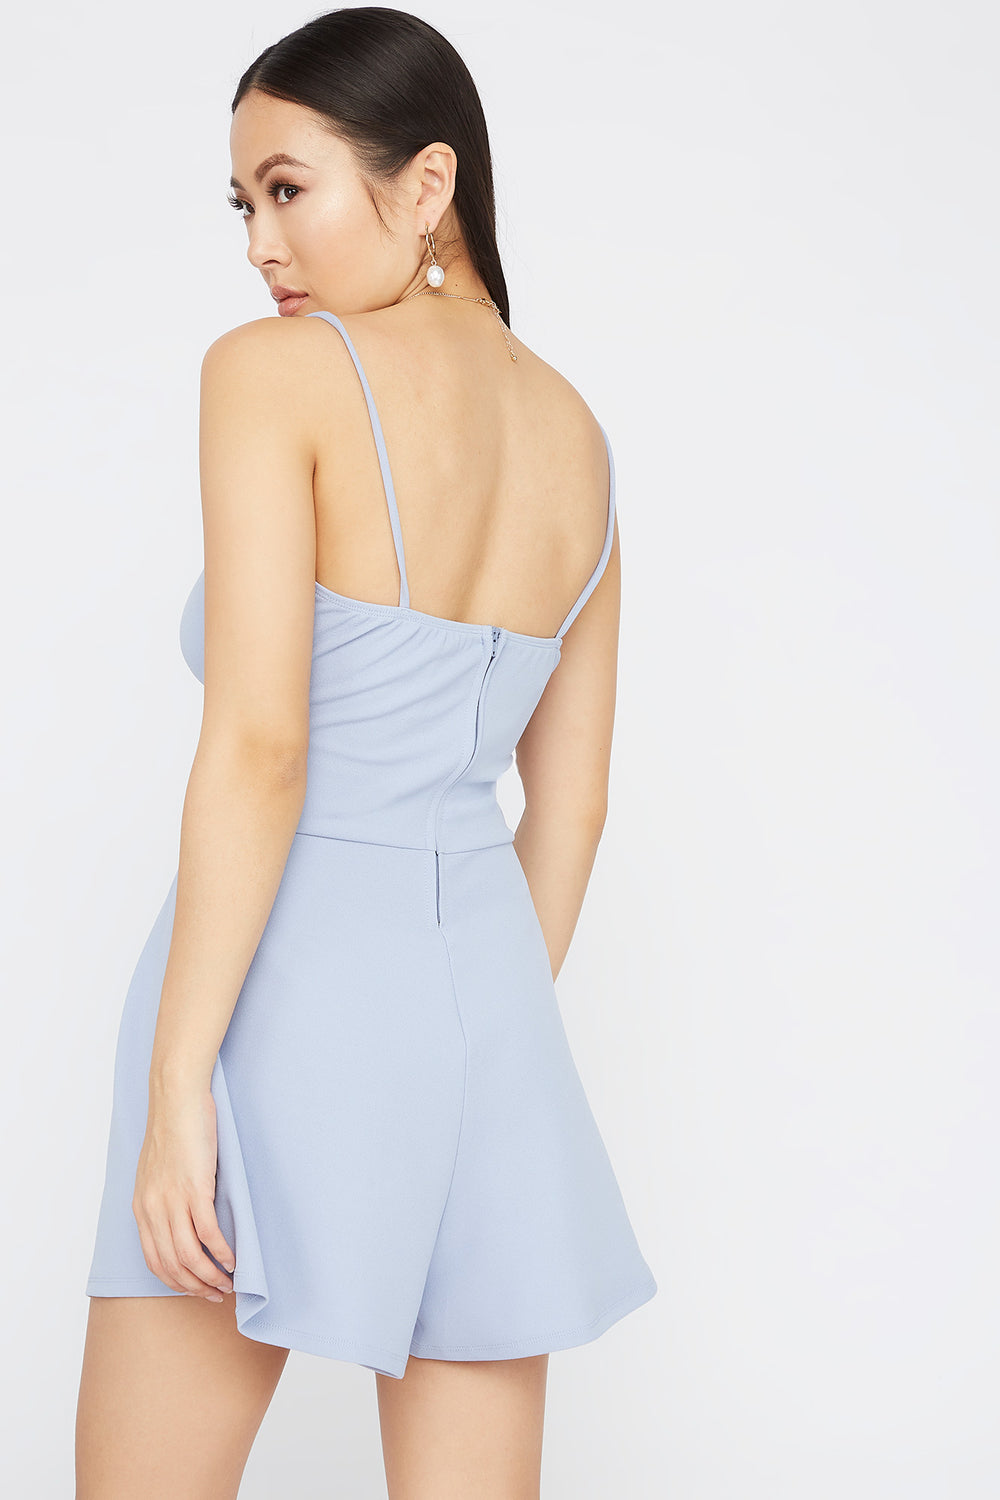 V-Neck Crossover Cut Out Romper Blue